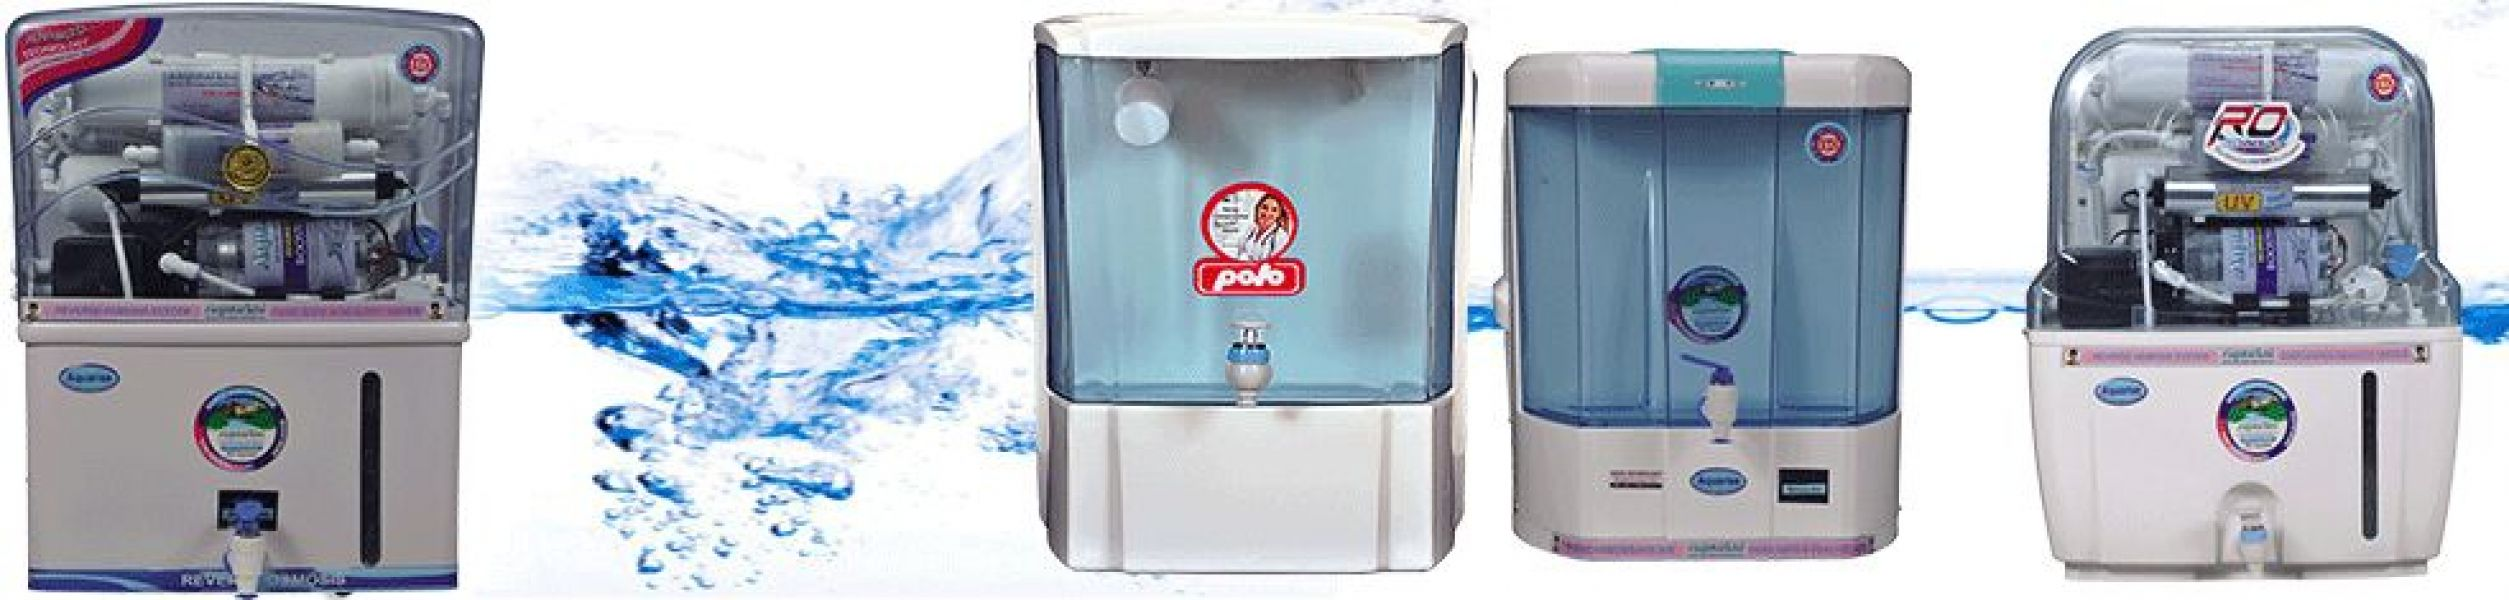 Best RO Water Purifiers Product in Delhi,ncr| RO Water Purifiers in Noida, Greater Noida| Best RO AM